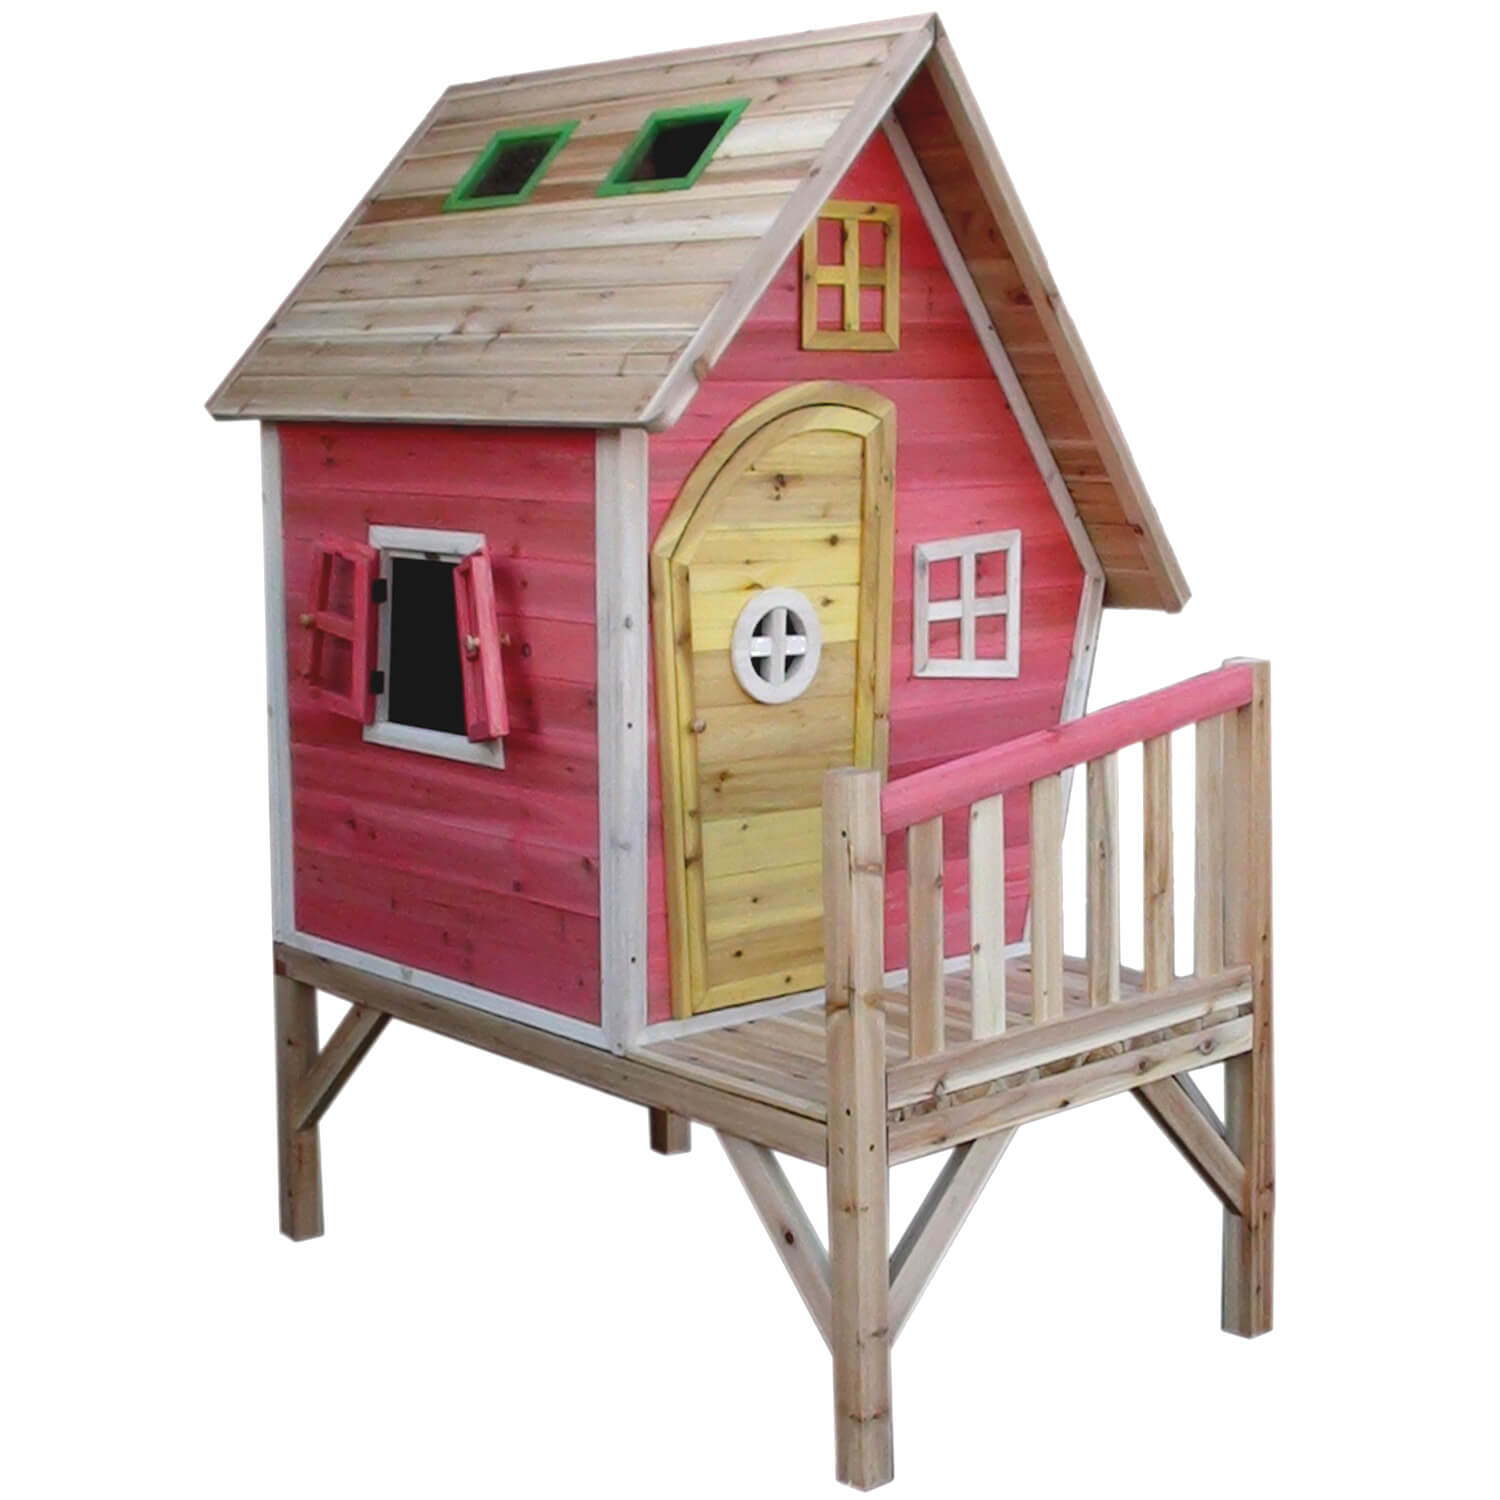 Crooked tower play house 3245 liberty games for Wooden playhouse designs